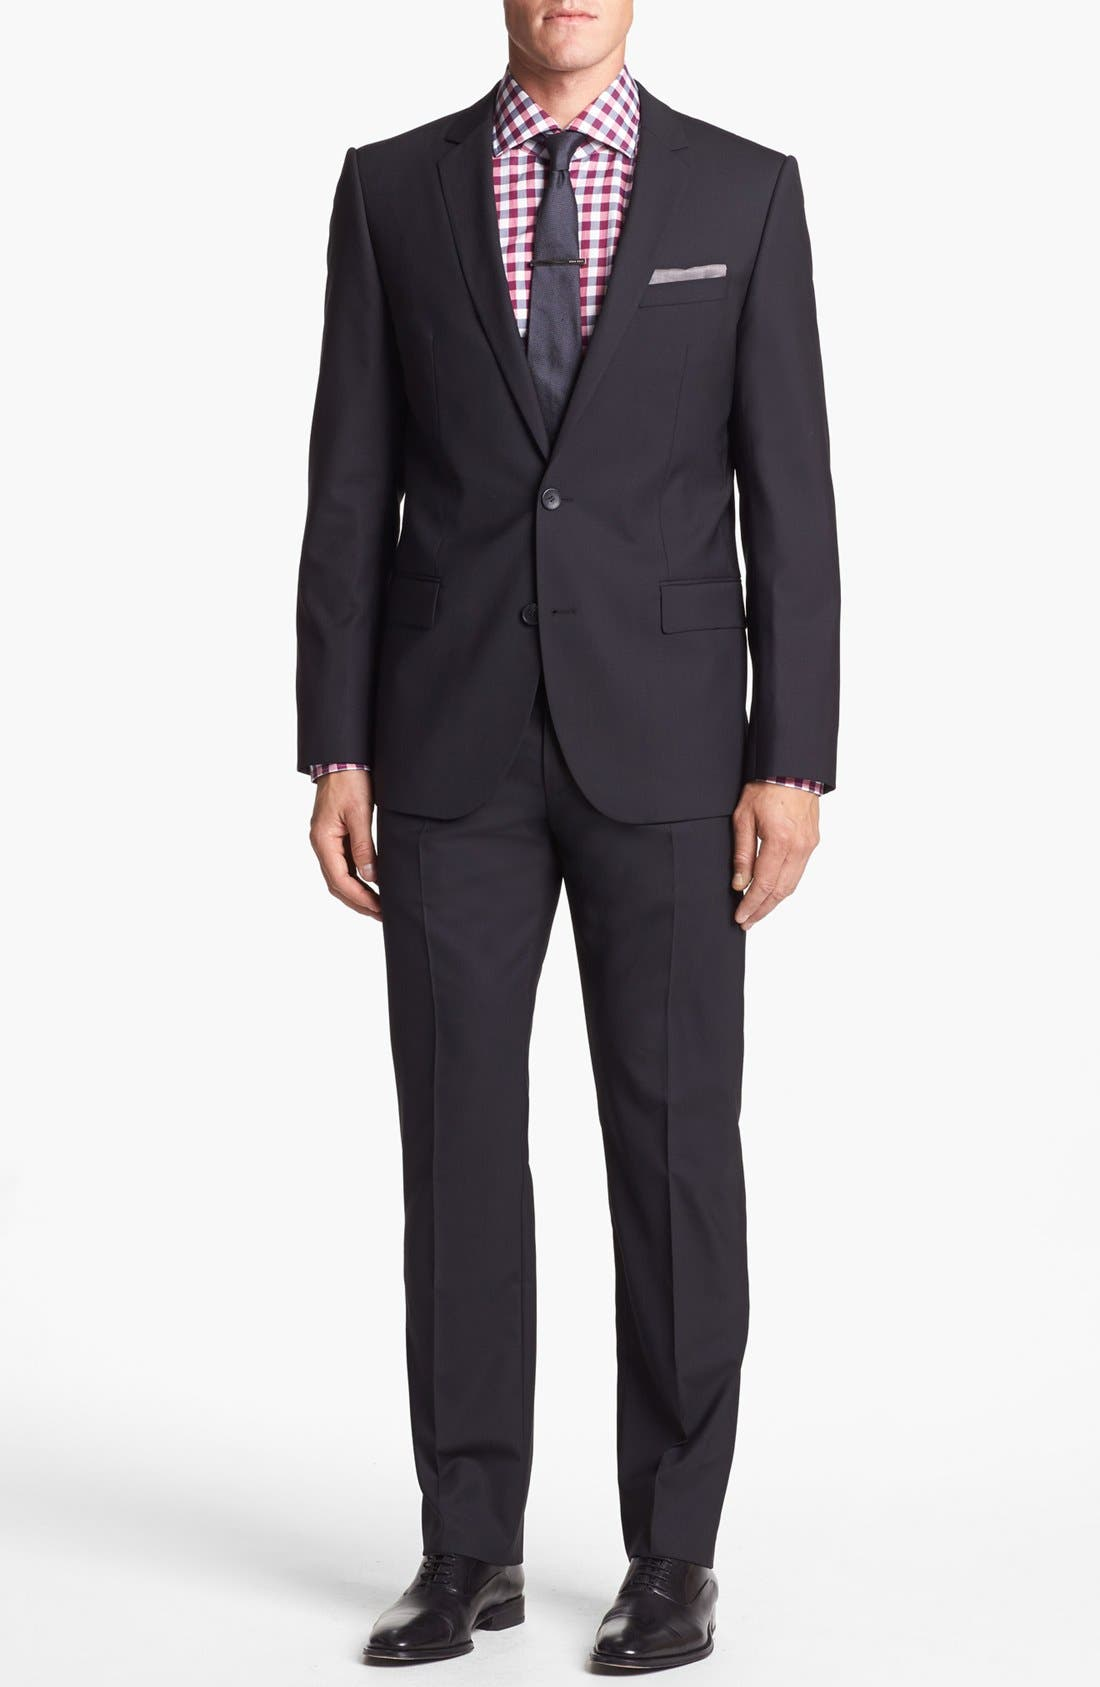 Alternate Image 1 Selected - HUGO 'Amaro/Heise' Trim Fit Stretch Suit